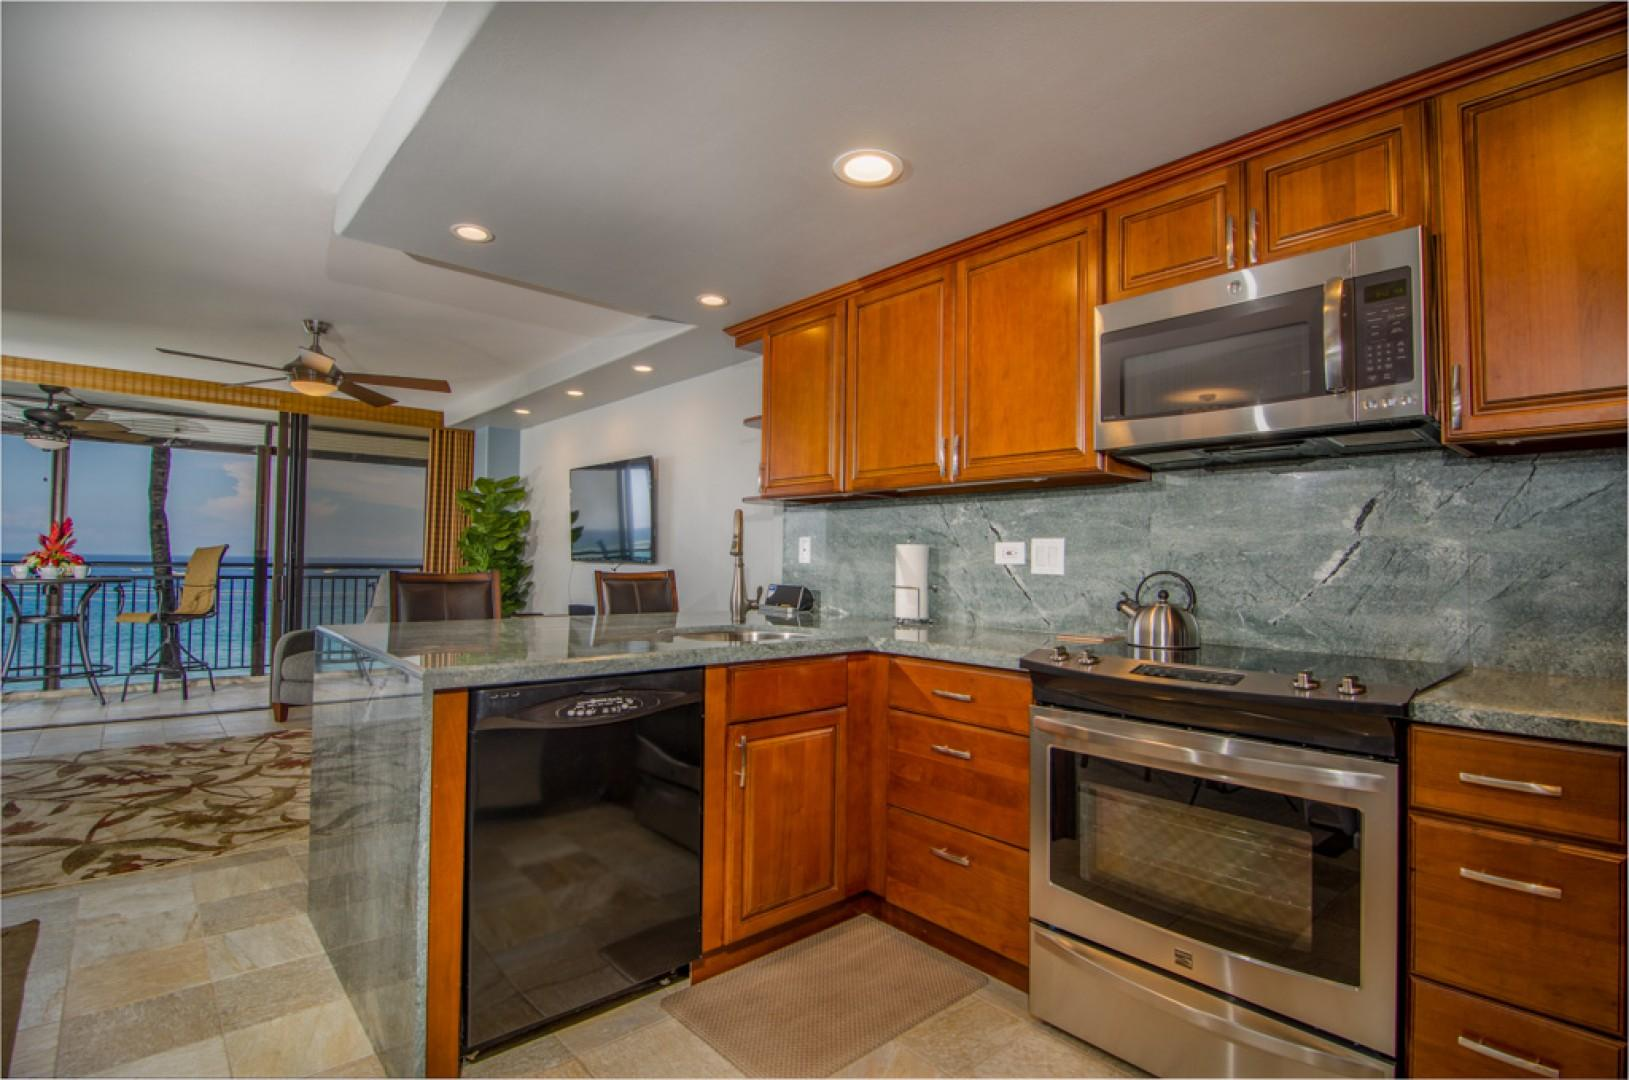 Beautiful open kitchen with new appliances.